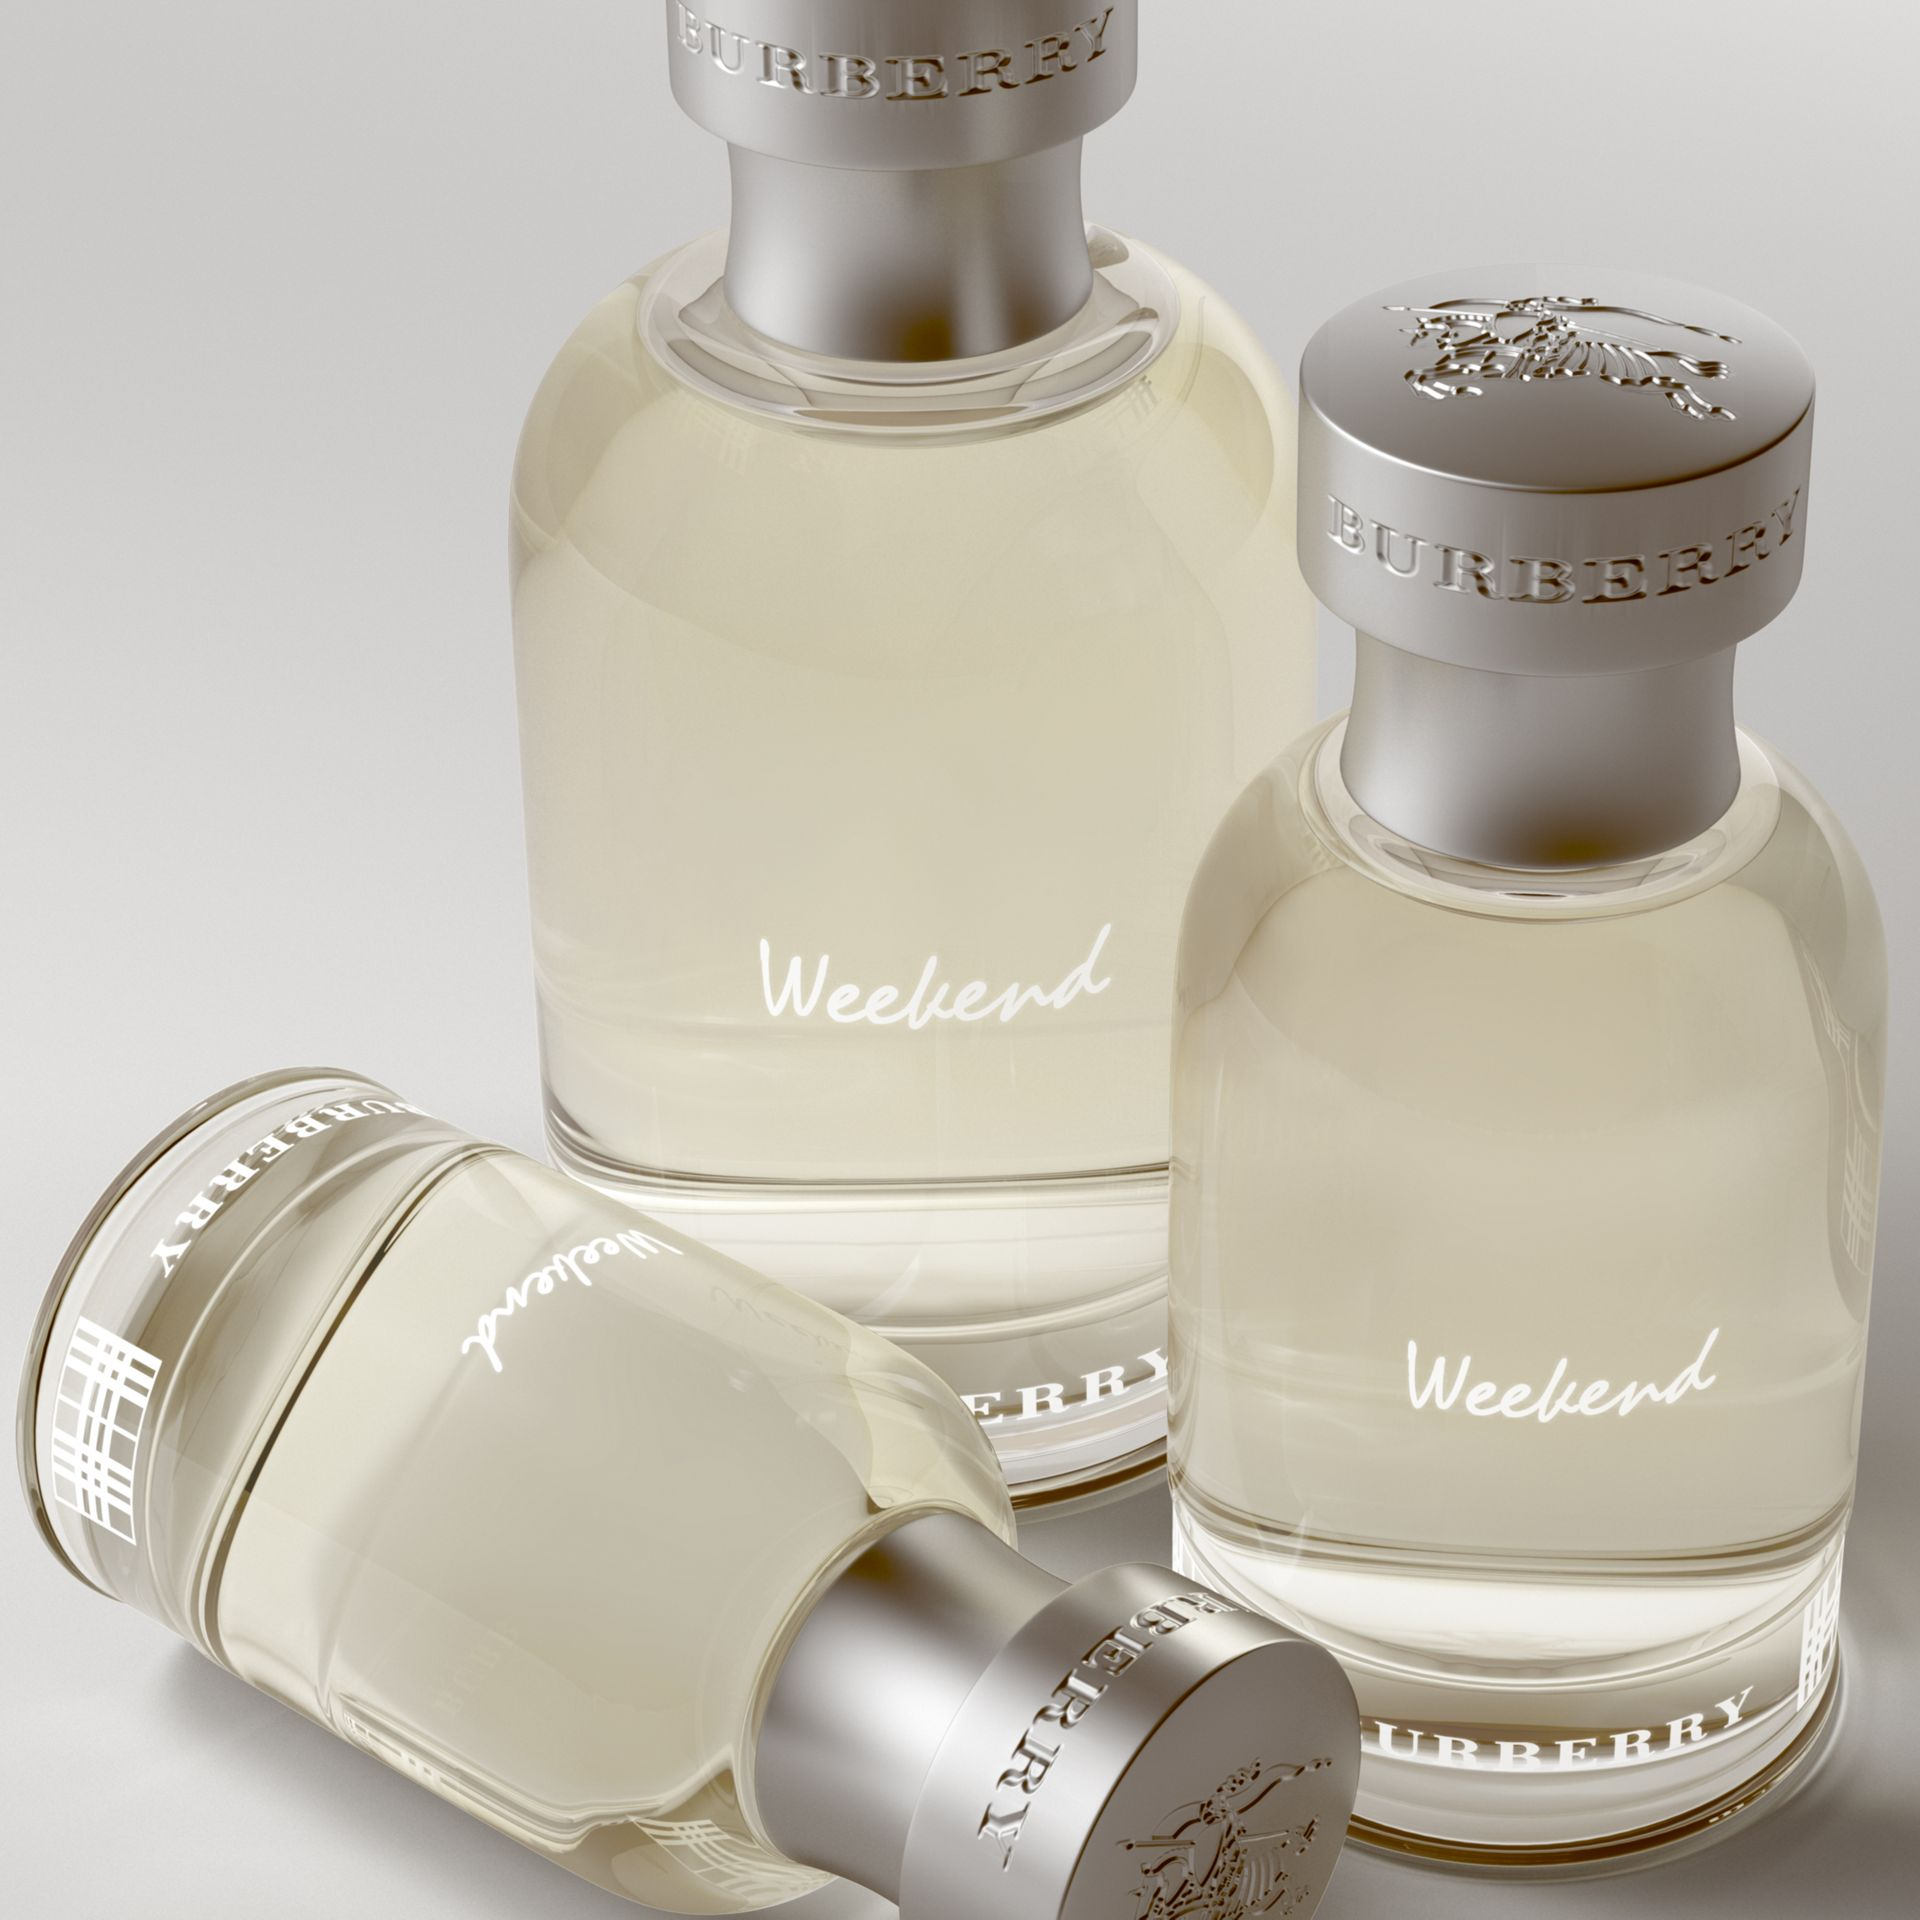 Burberry Weekend 淡香水 100ml - 圖庫照片 2